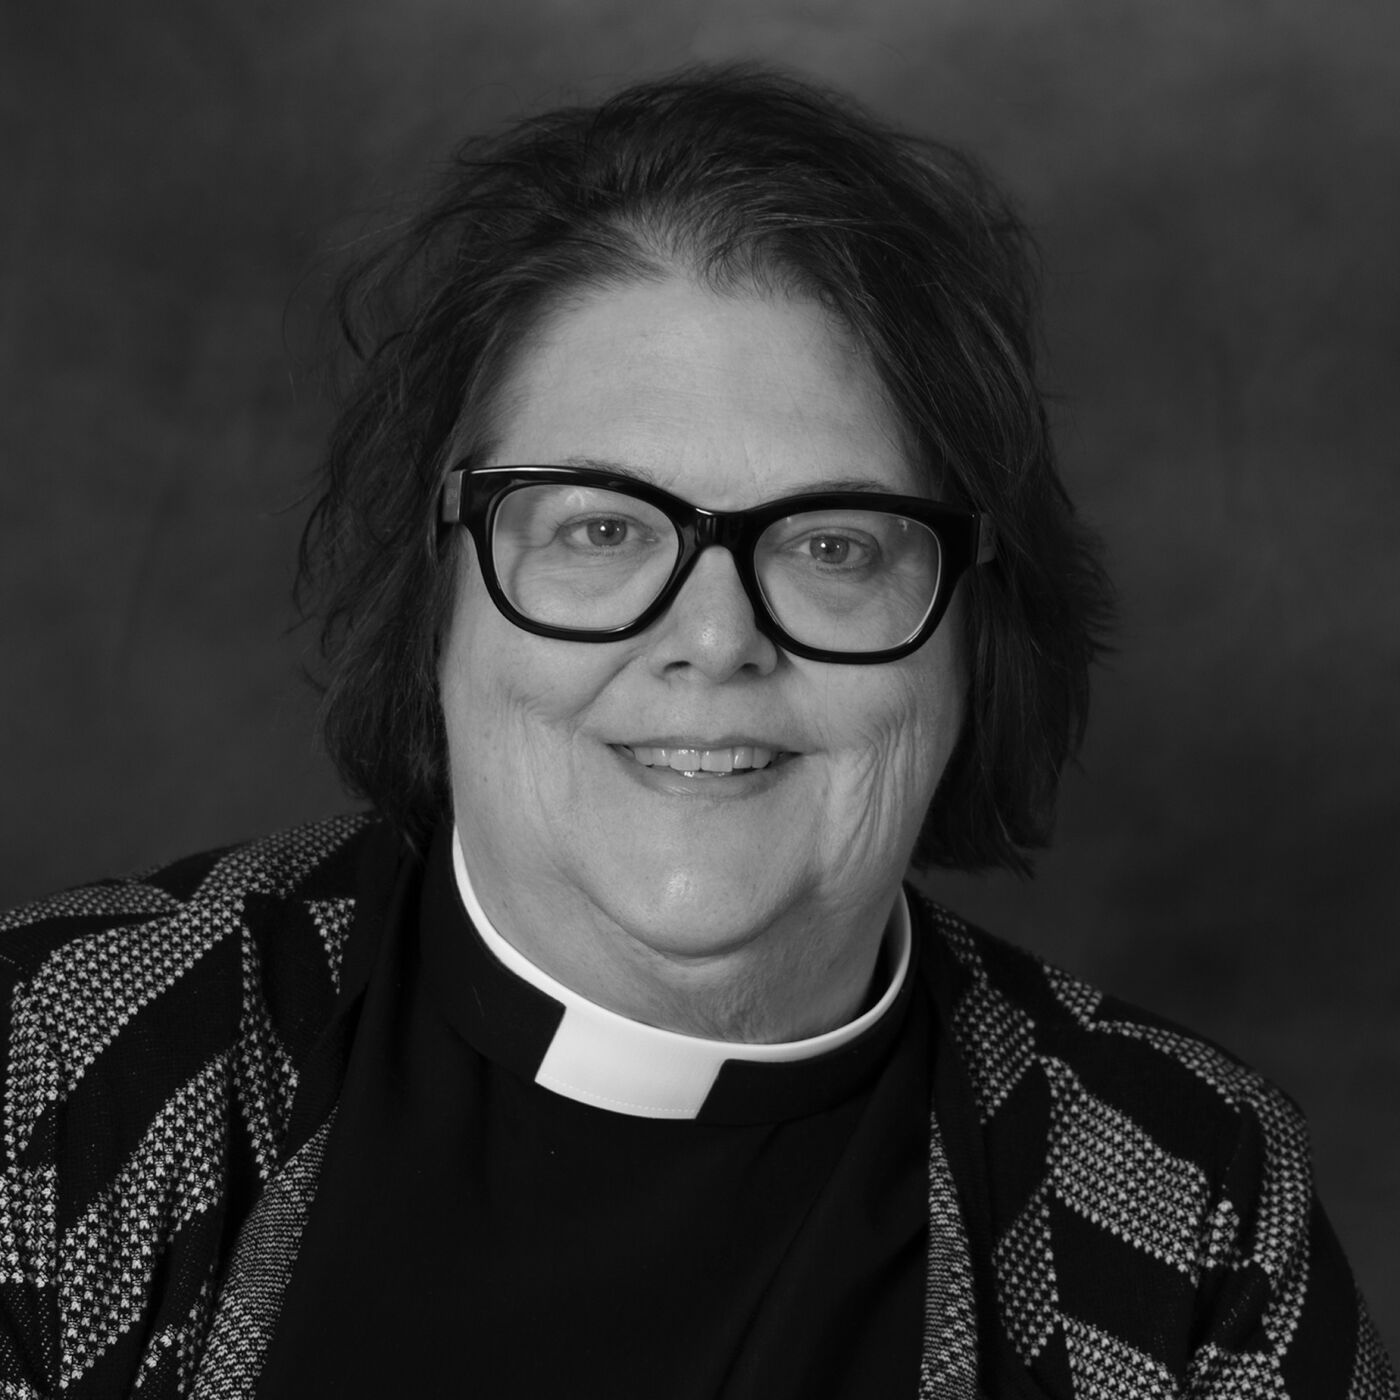 Episode 45: Political Theology Matters, with the Rev. Dr. Marcia Ledford